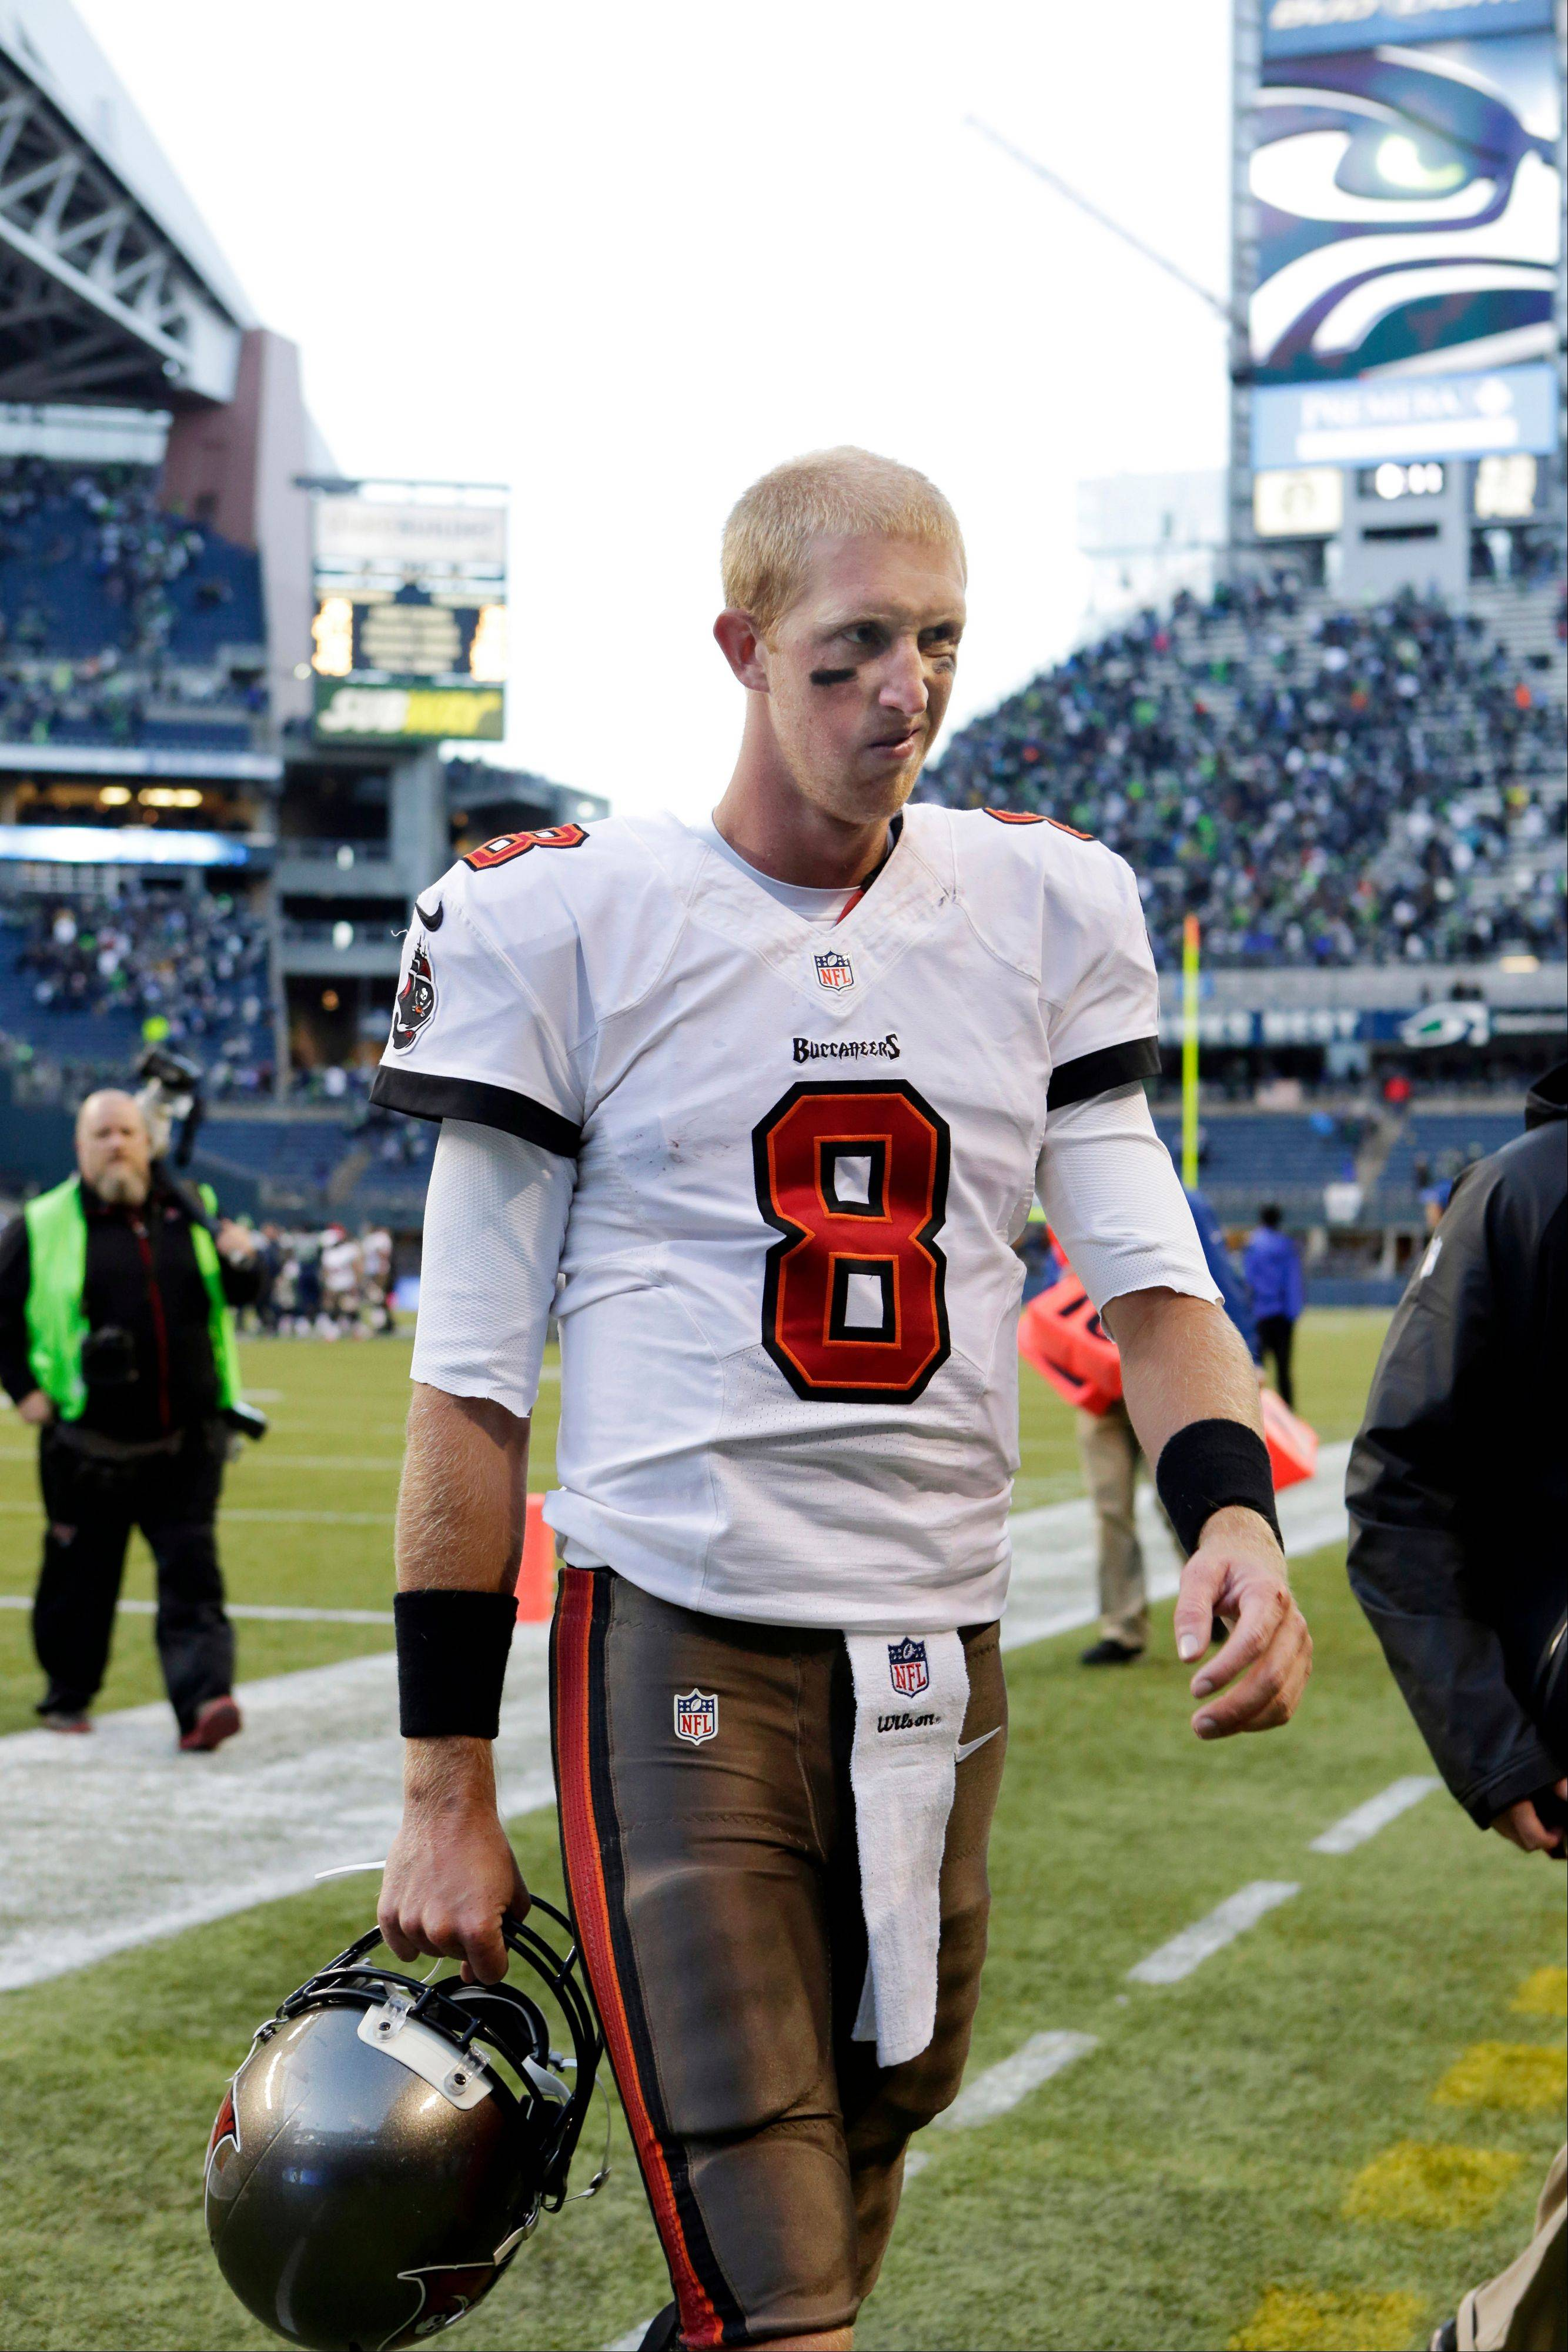 Tampa Bay Buccaneers quarterback Mike Glennon walks off the field after the Buccaneers lost 27-24 to the Seattle Seahawks in overtime of an NFL football game Sunday, Nov. 3, 2013, in Seattle.